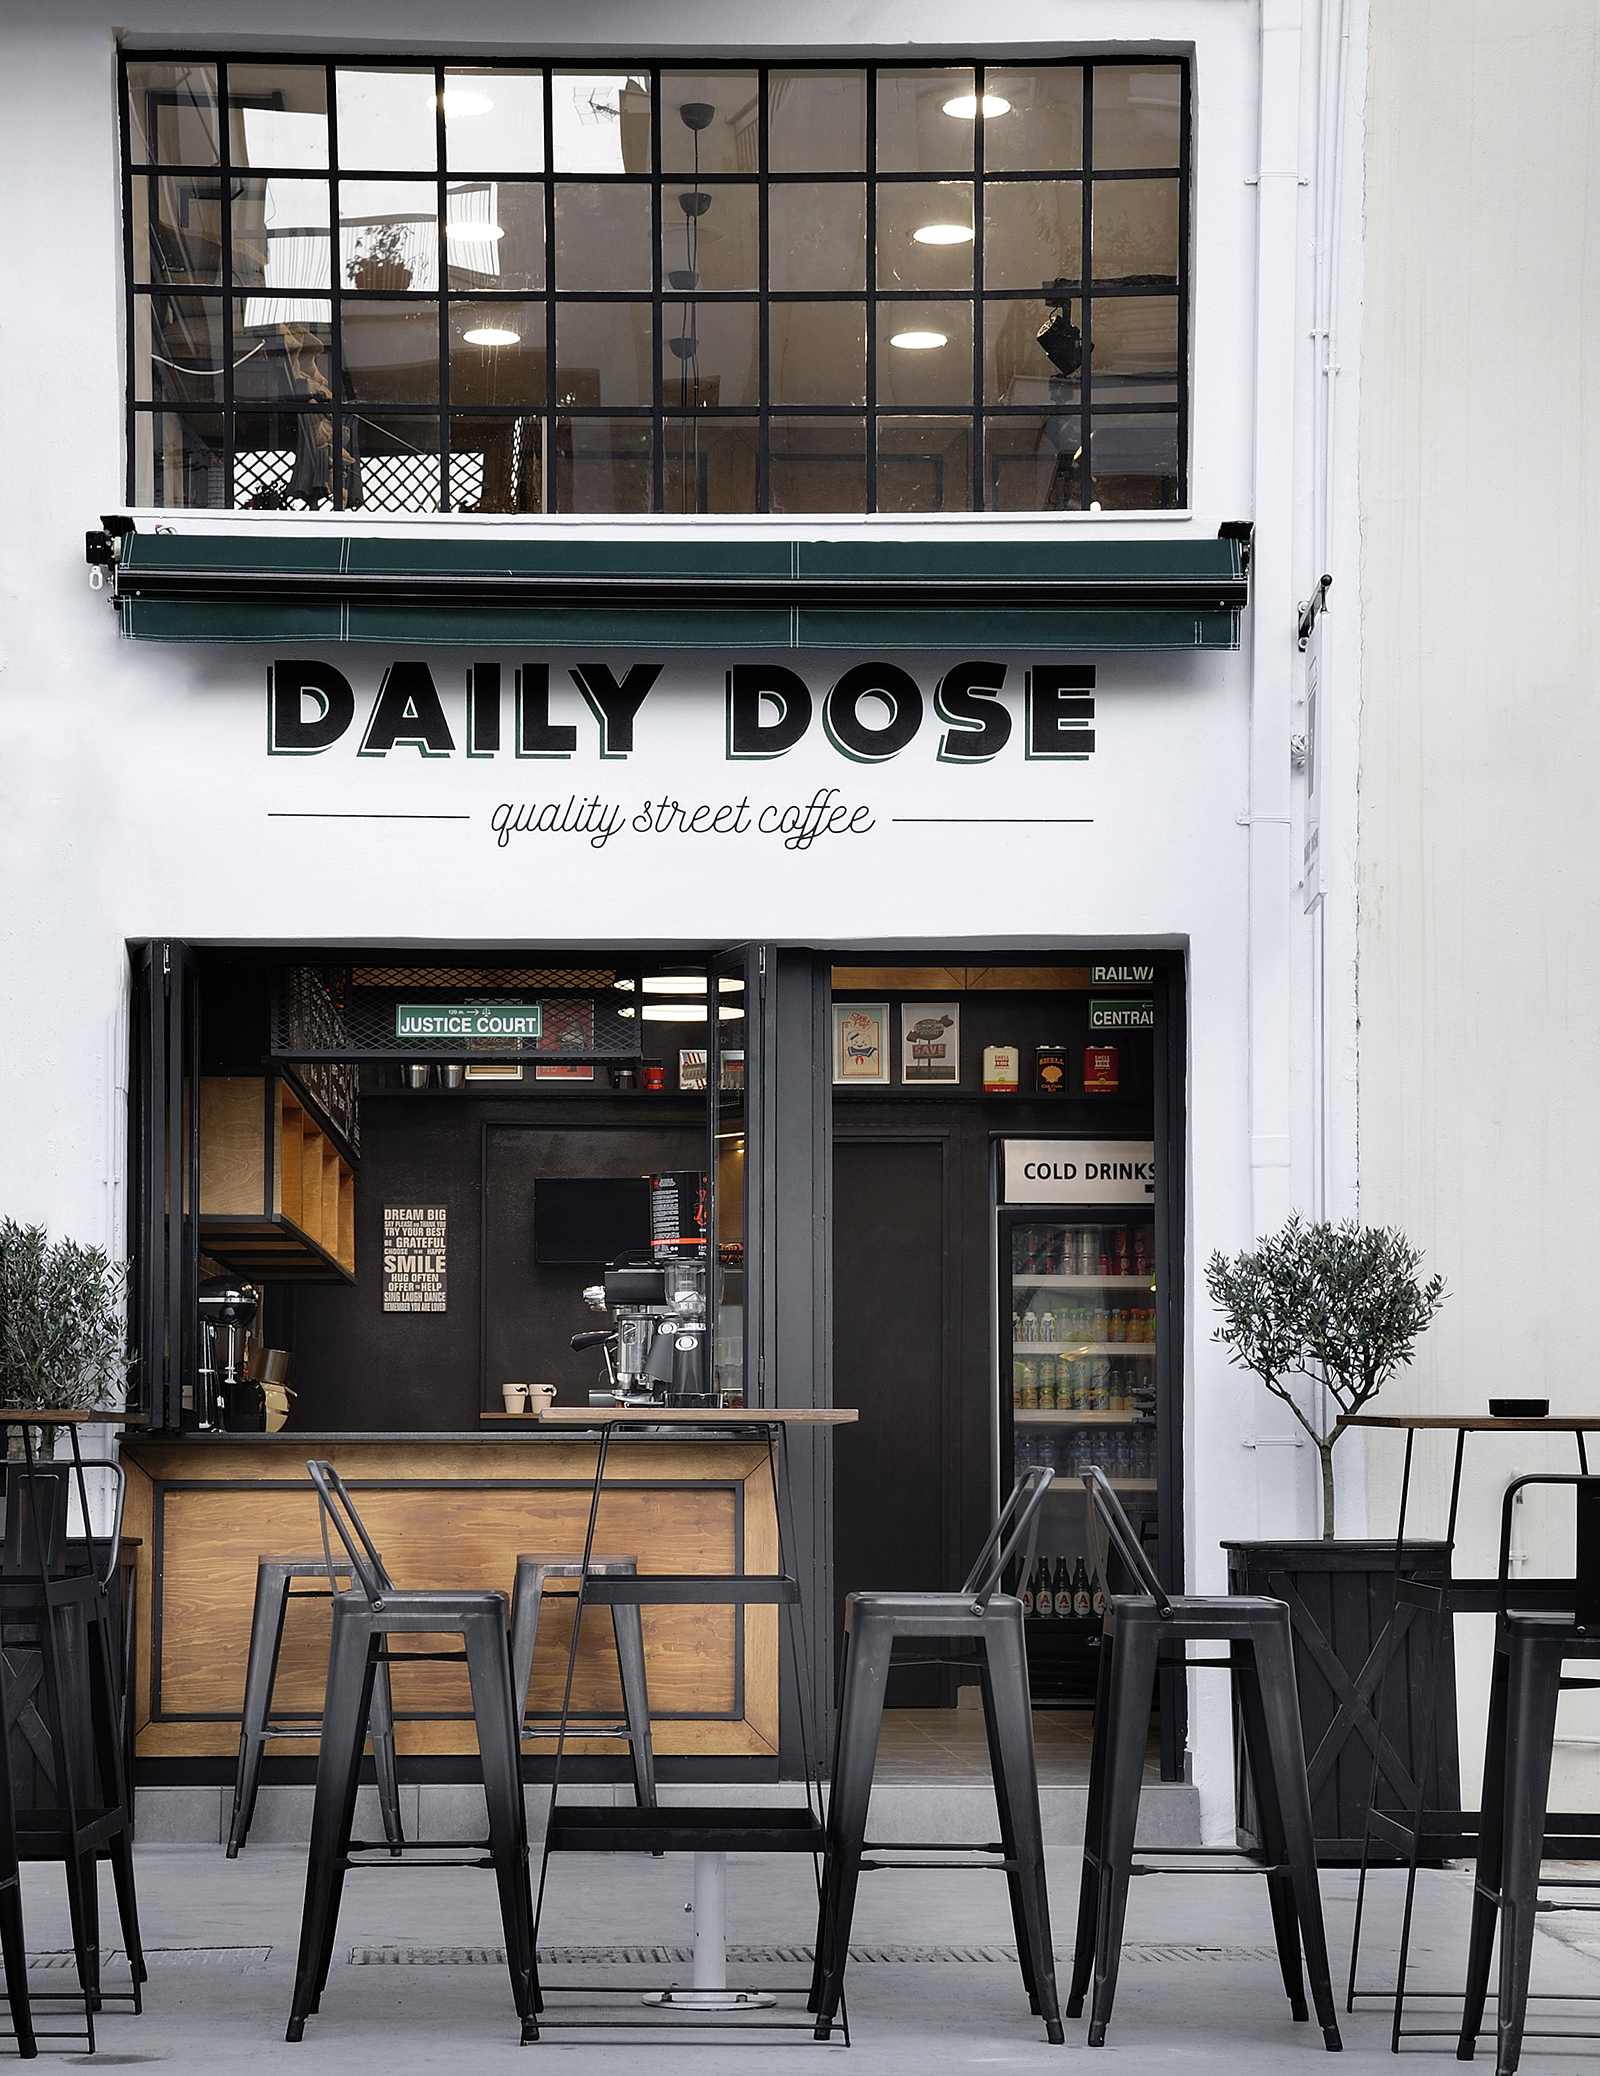 Daily dose by andreas petropoulos greece gigantic for Small shop exterior design